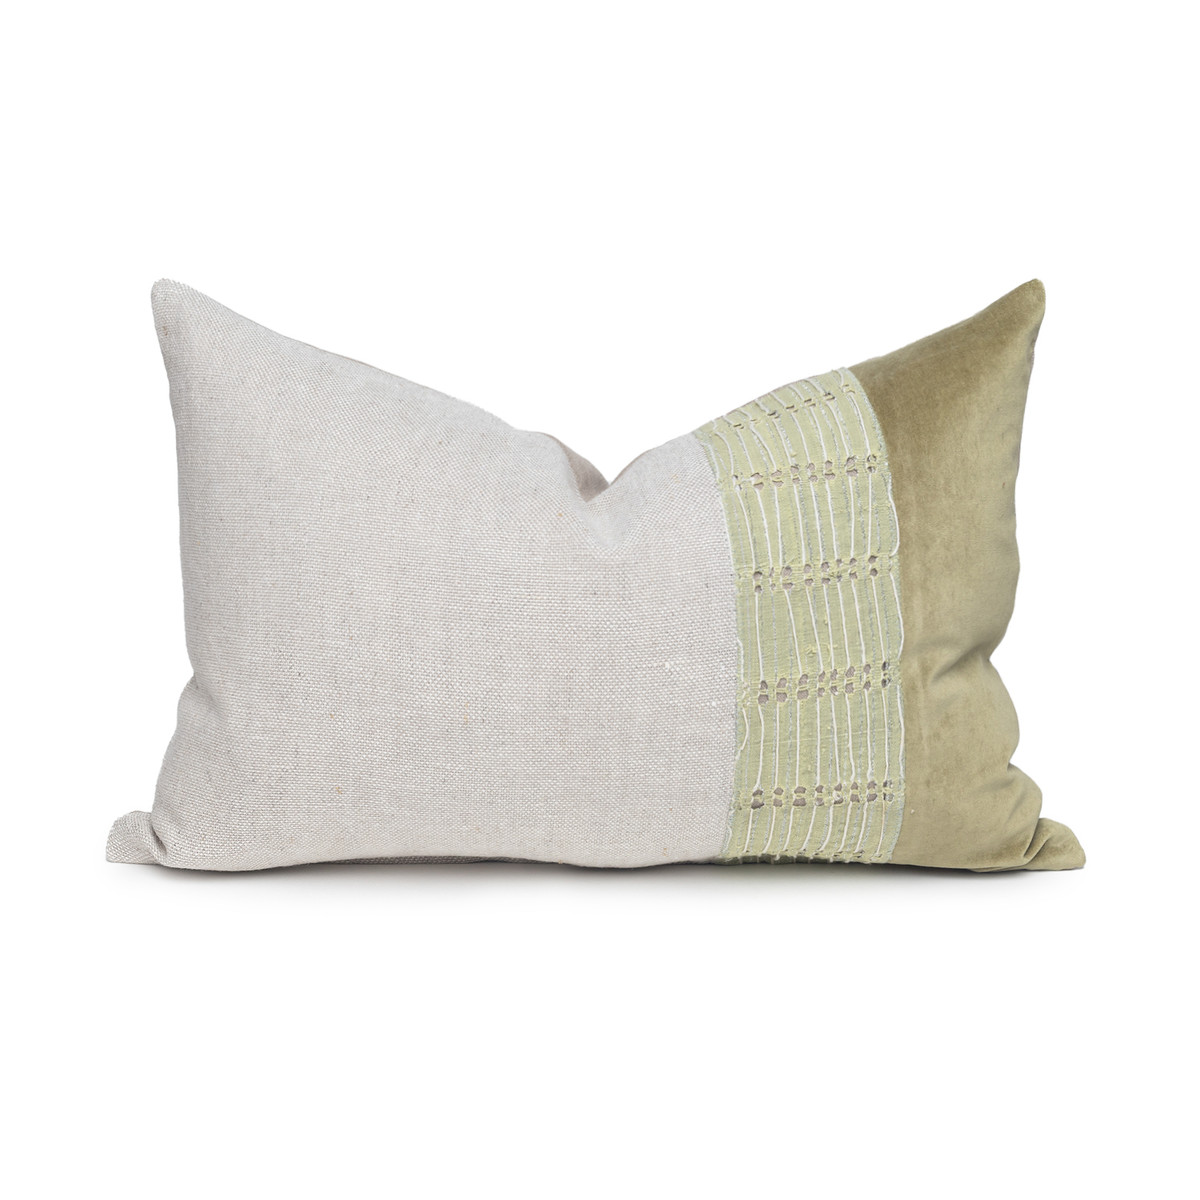 Harp Luxe Vintage Lumbar Pillow with African Aso Oke Textiles and 100% Eco-friendly Topanga linen in Natural & Cotton Velvet- 1420- Front View